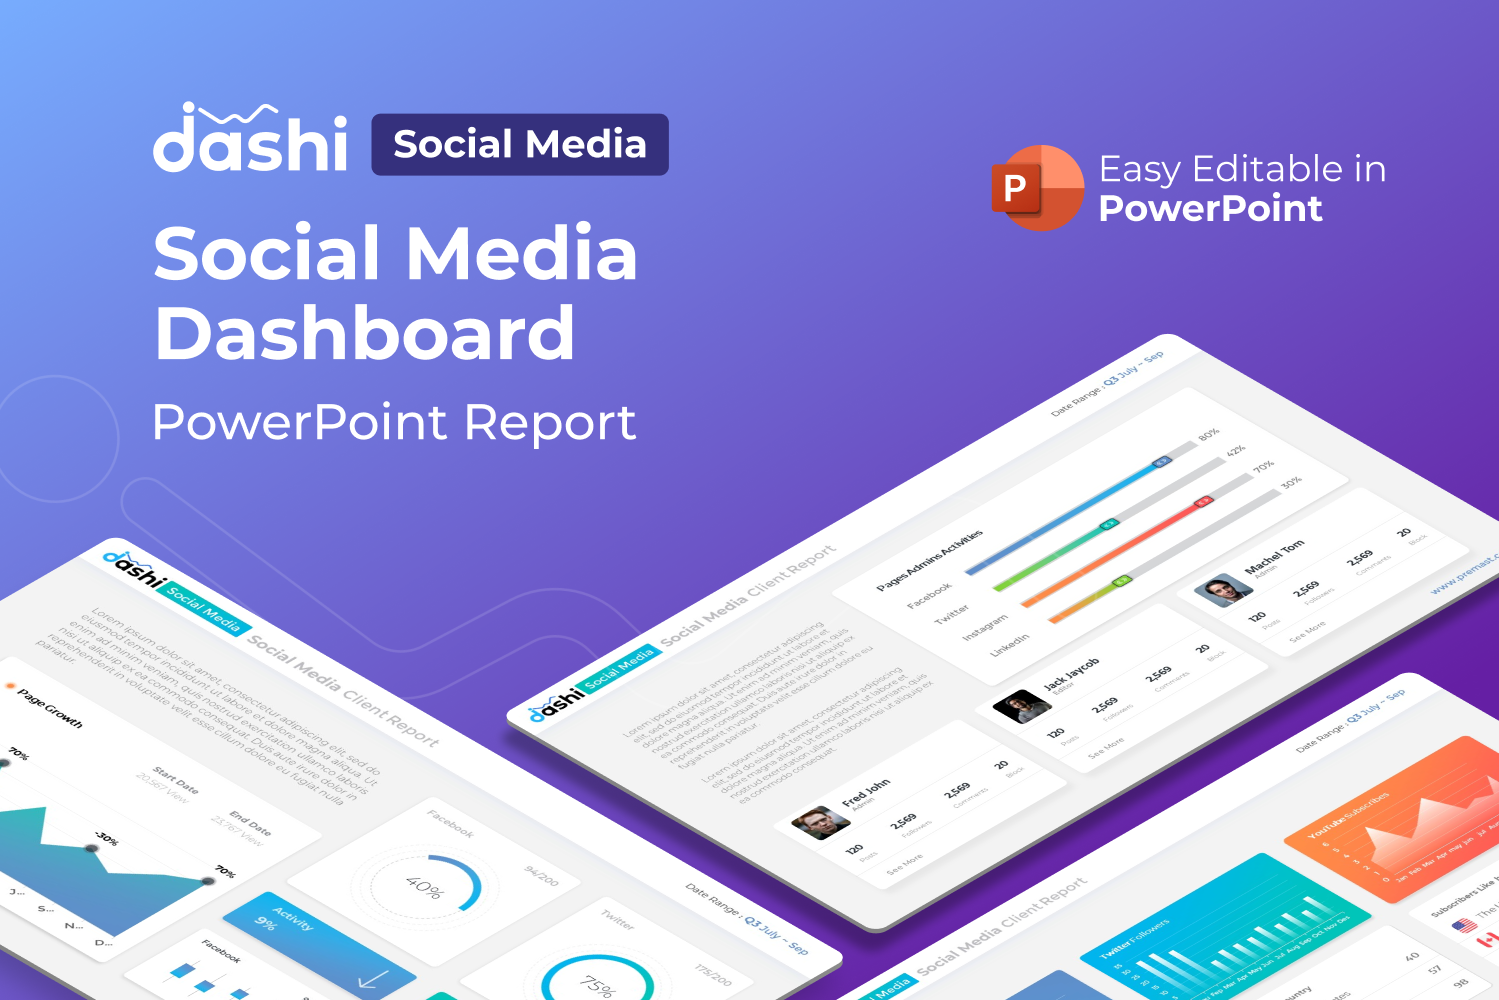 Dashi Social Media – Dashboard Report Presentation PowerPoint Template